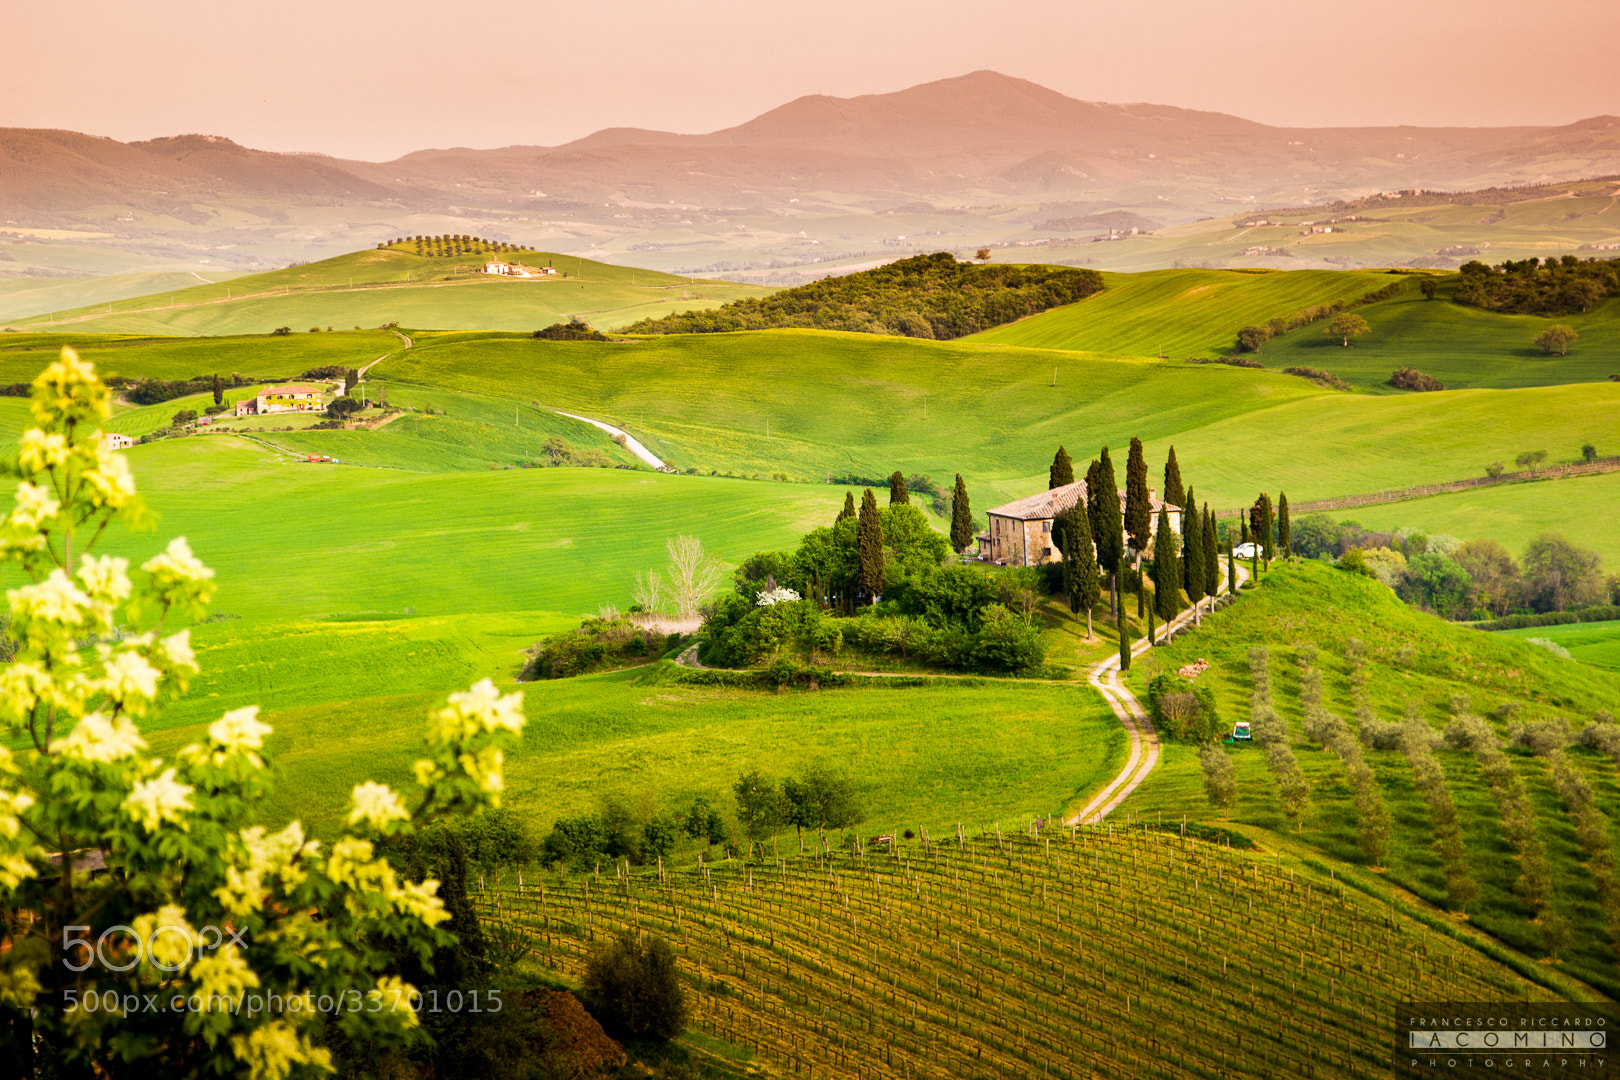 Photograph Country by Francesco Riccardo Iacomino on 500px